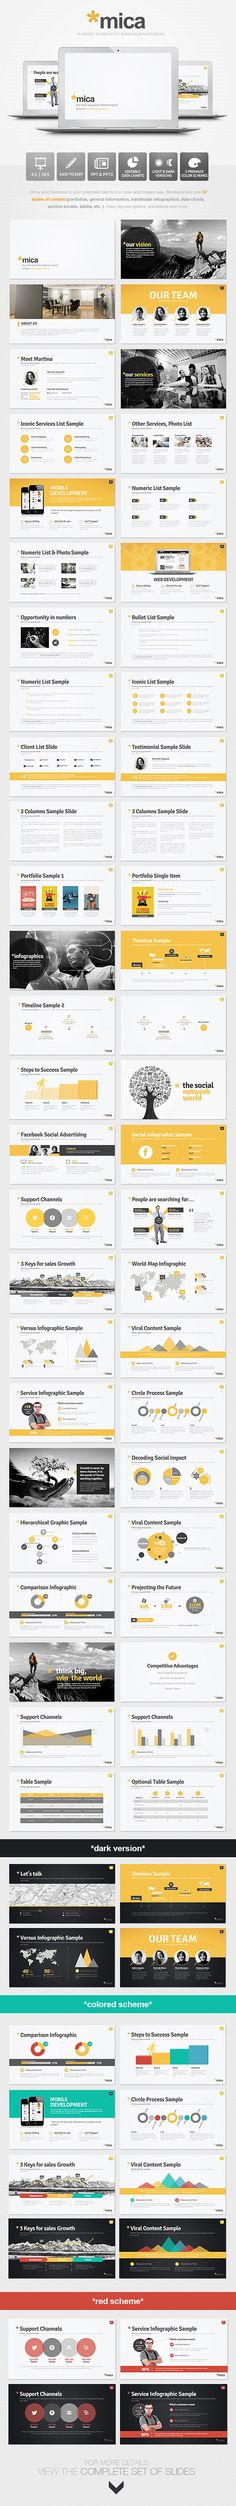 Famous - Creative Presentation Creative, Creative powerpoint and - marketing presentation